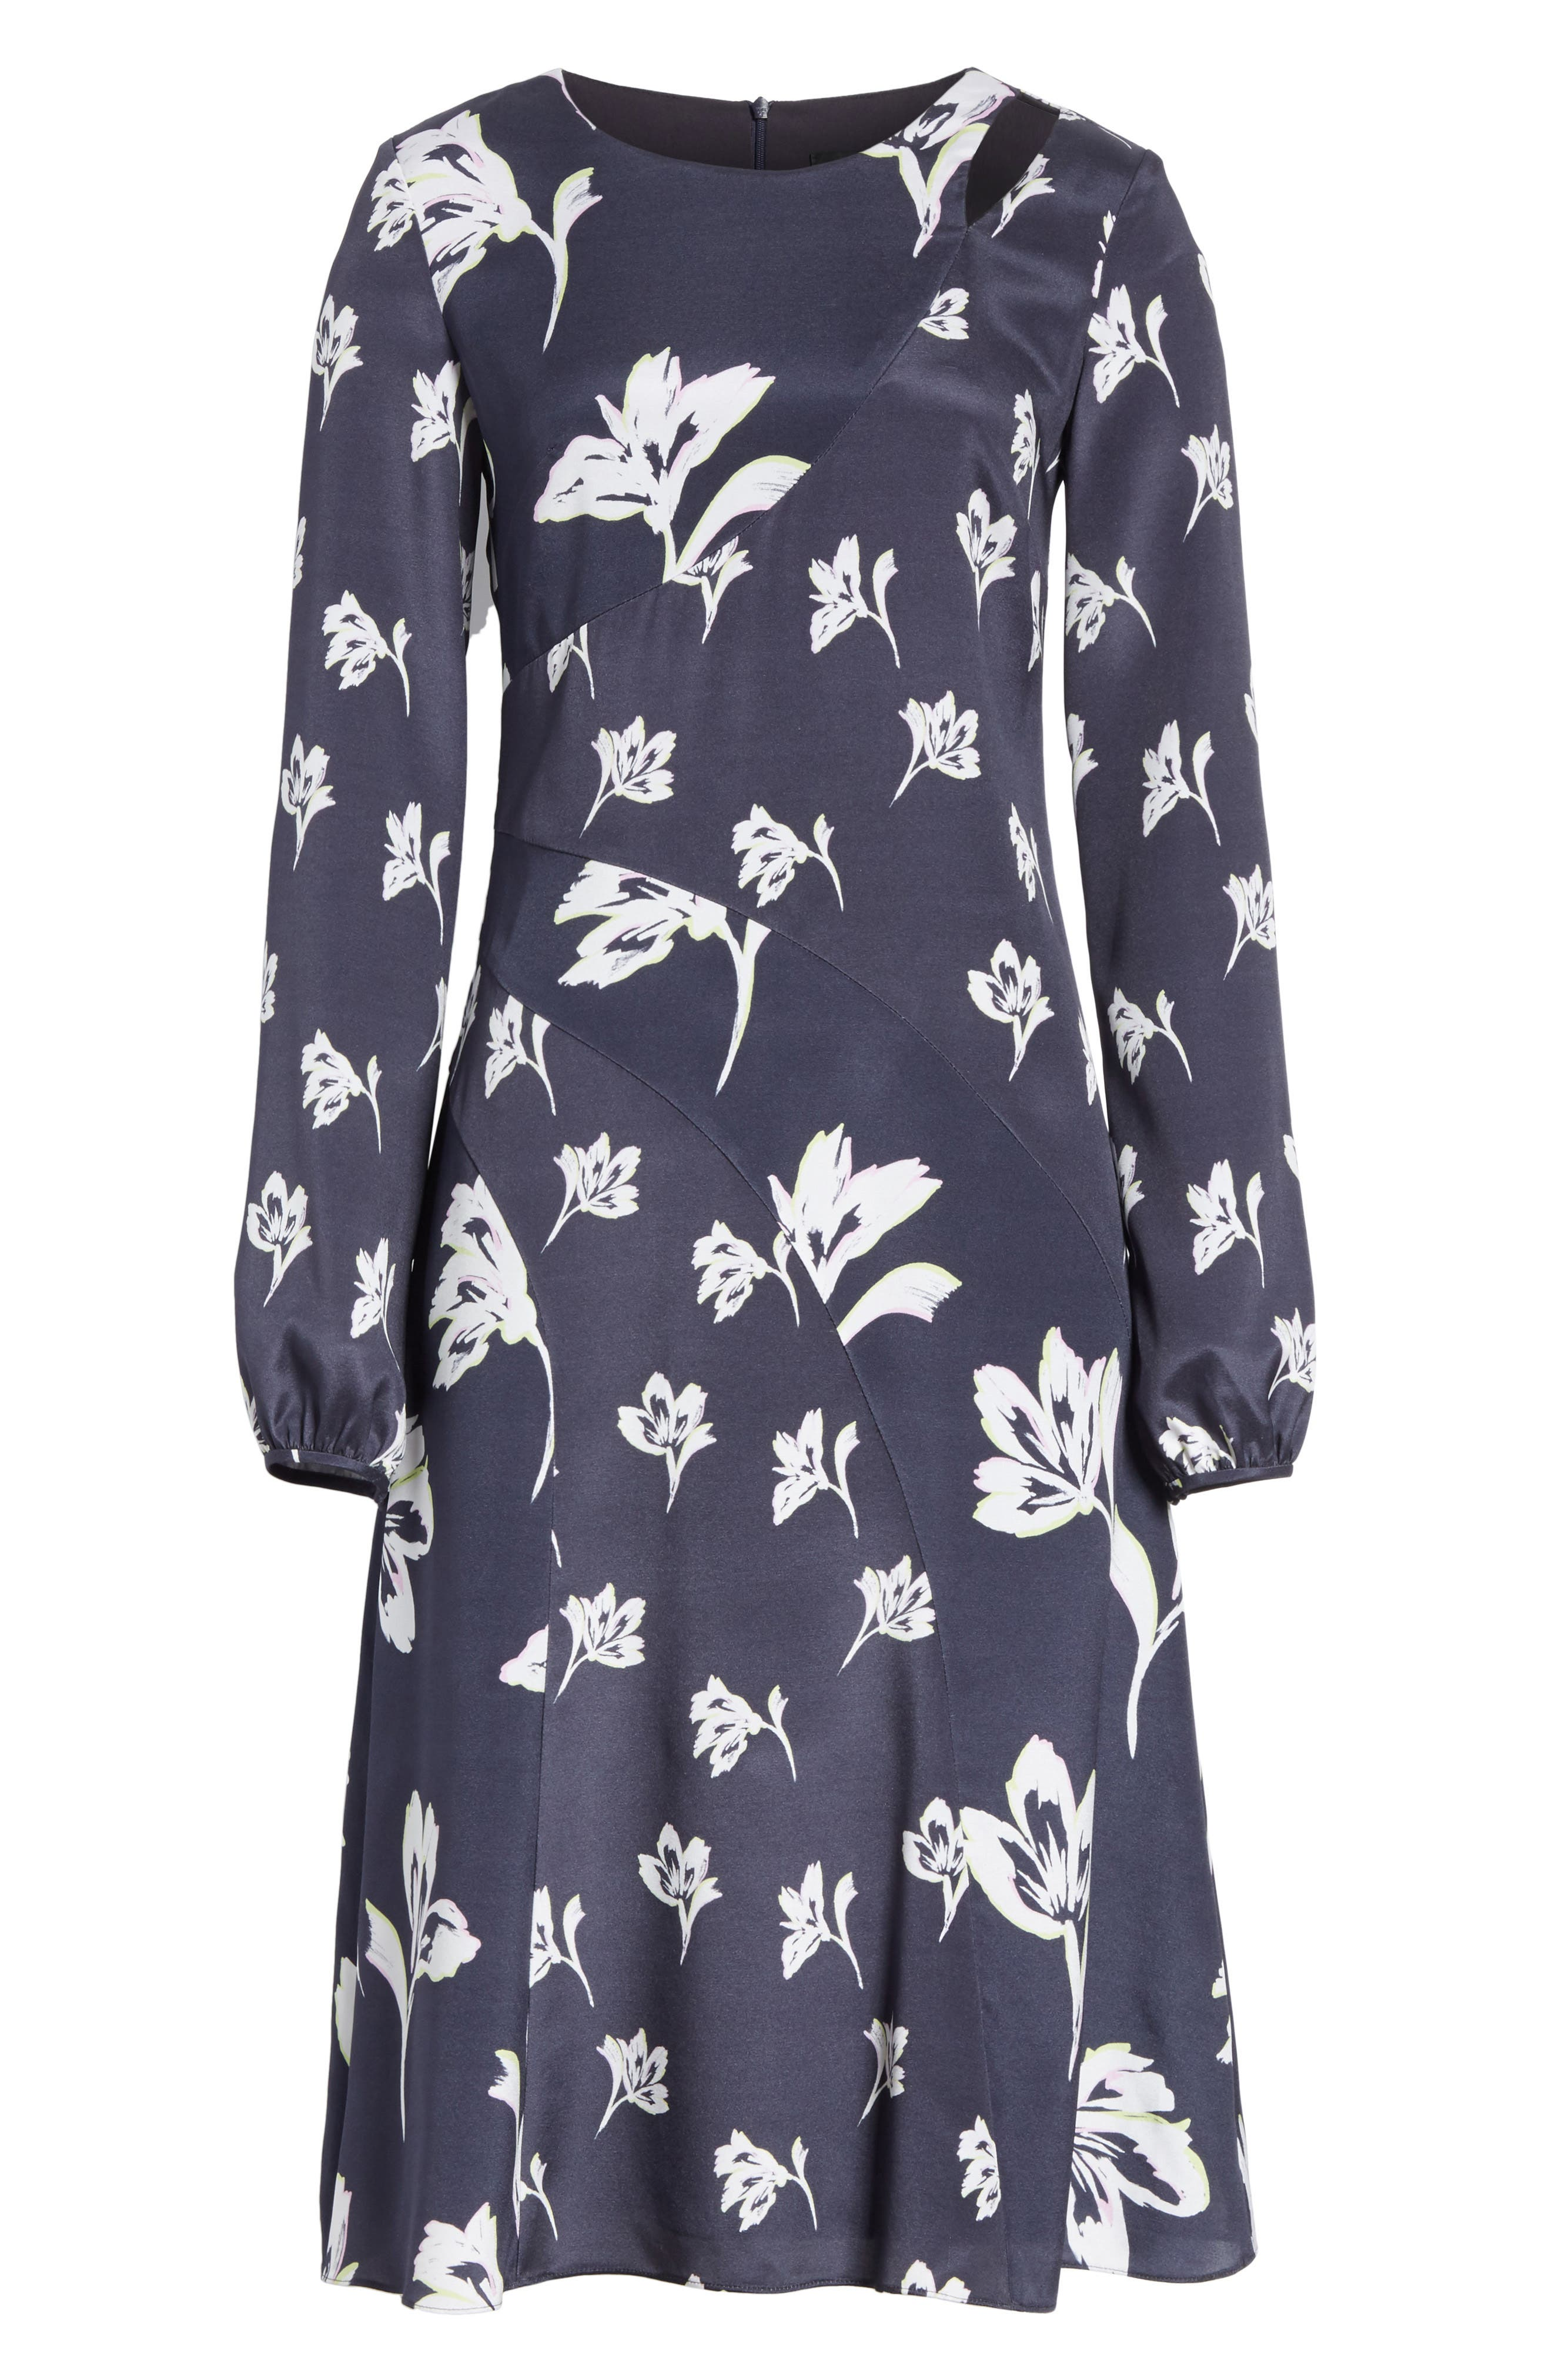 Falling Flower Print Stretch Silk Dress,                             Alternate thumbnail 7, color,                             Anthracite Multi